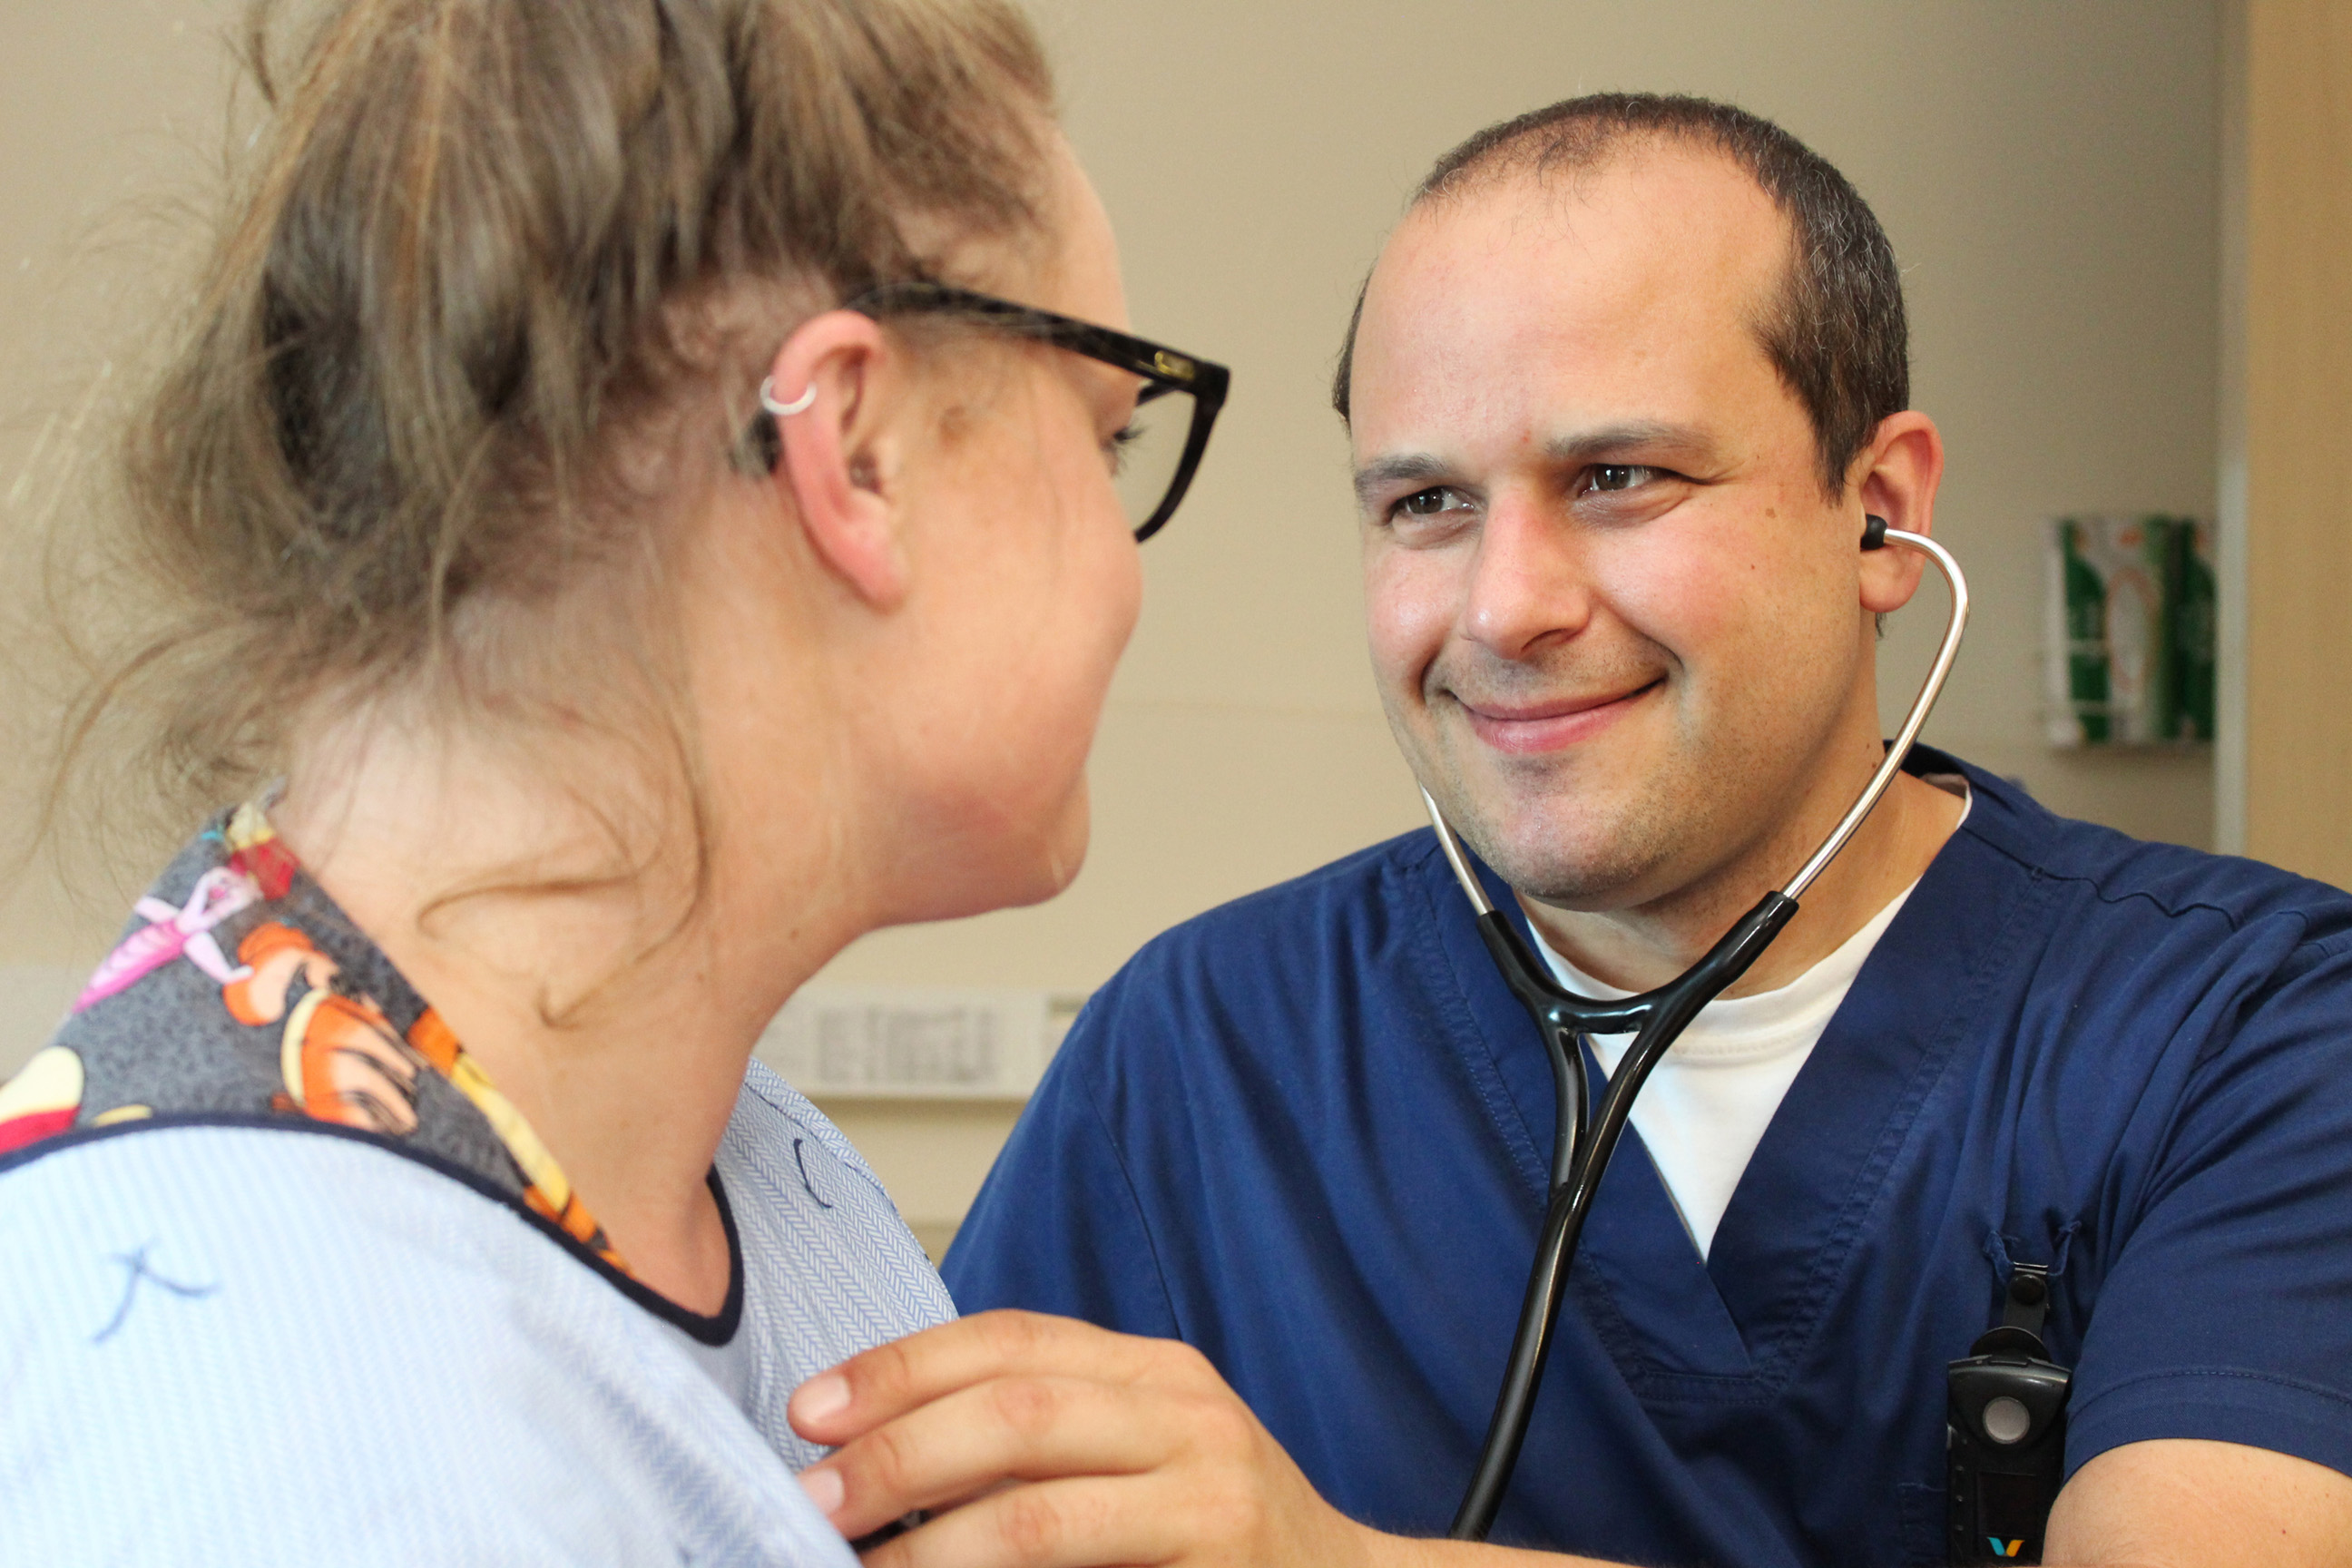 A caregiver is using a stethoscope on a patient